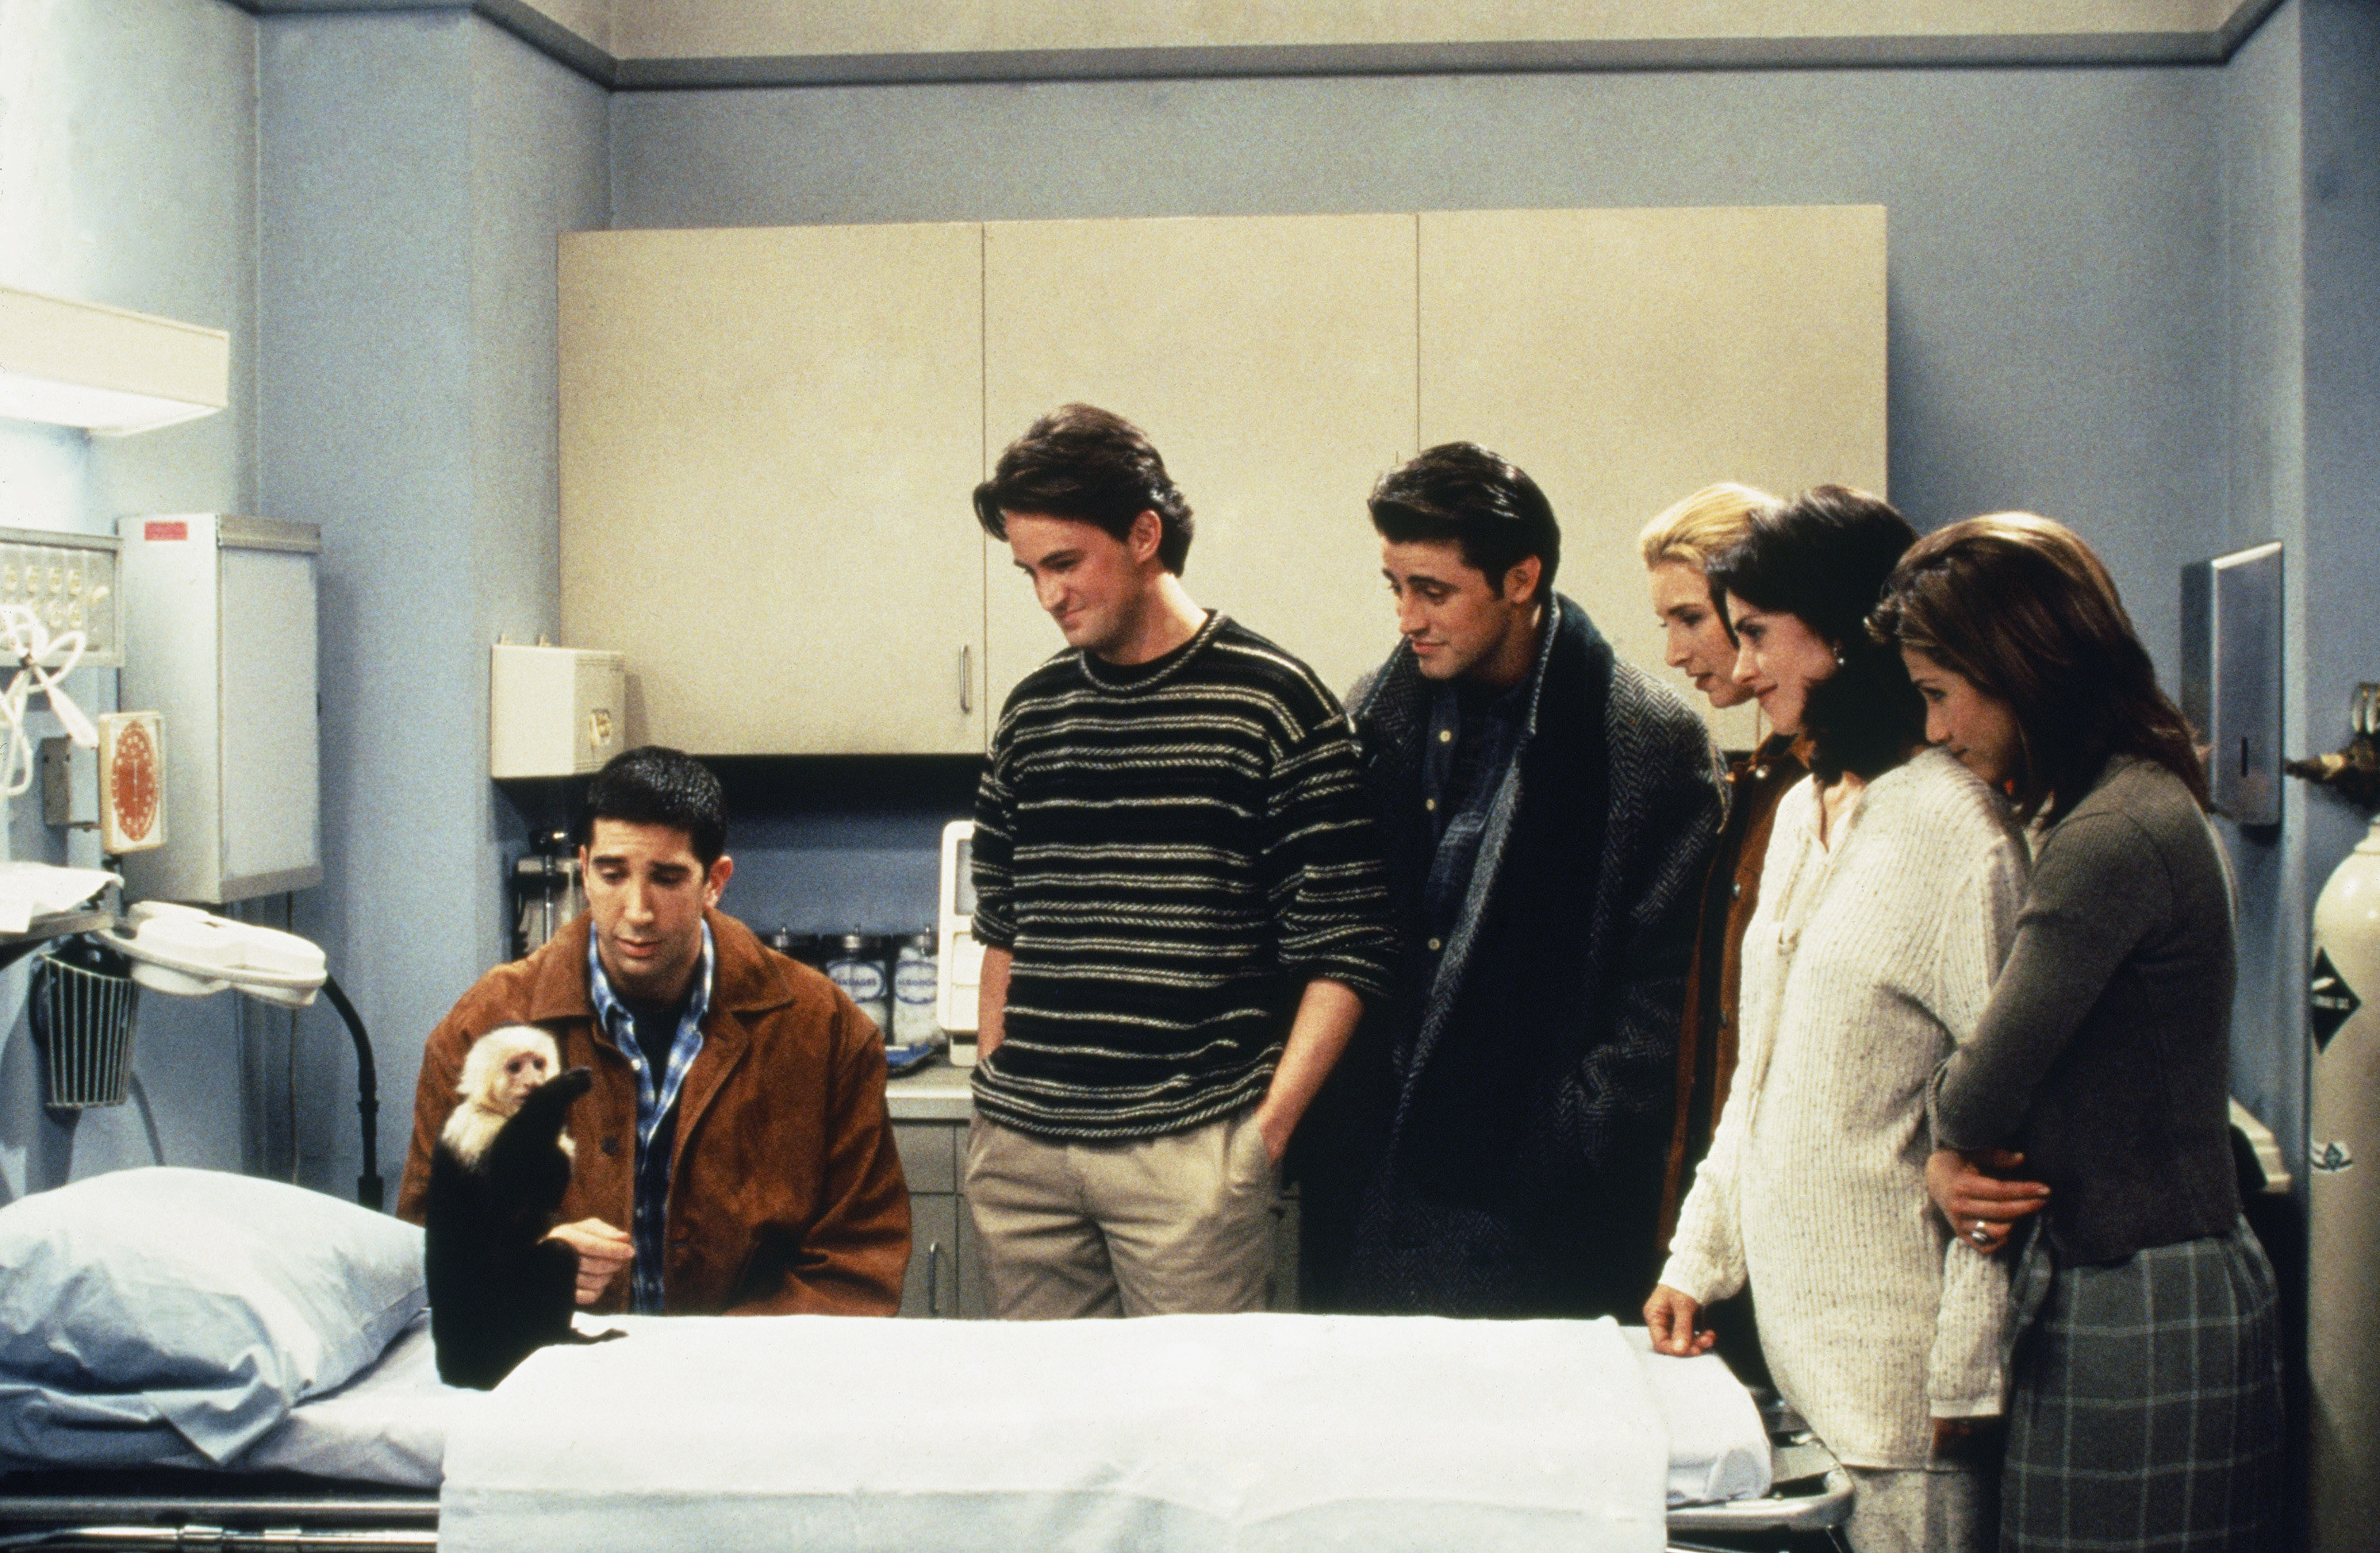 Ross and the rest of the cast look at Marcel while the monkey sits on a doctor's table